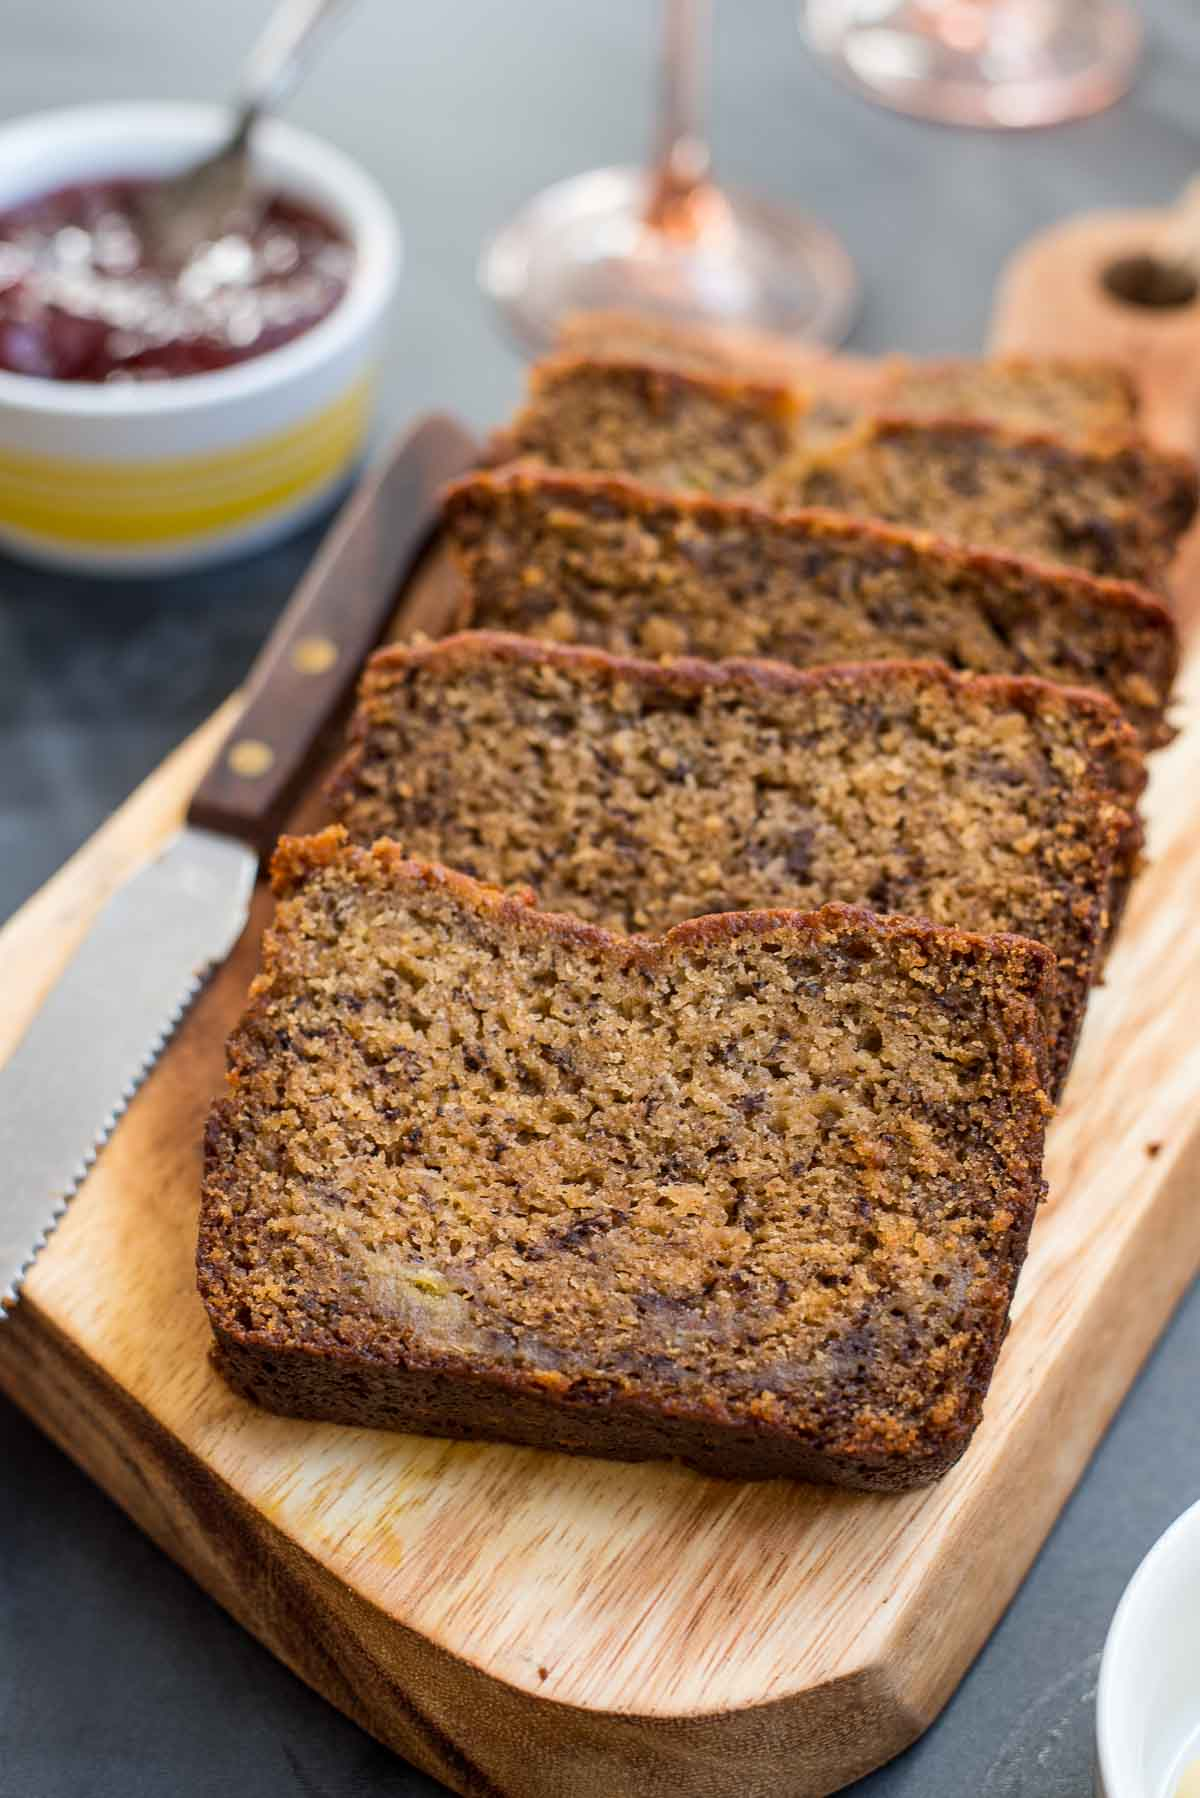 Banana bread is a perfect addition to a make ahead Easter brunch menu.